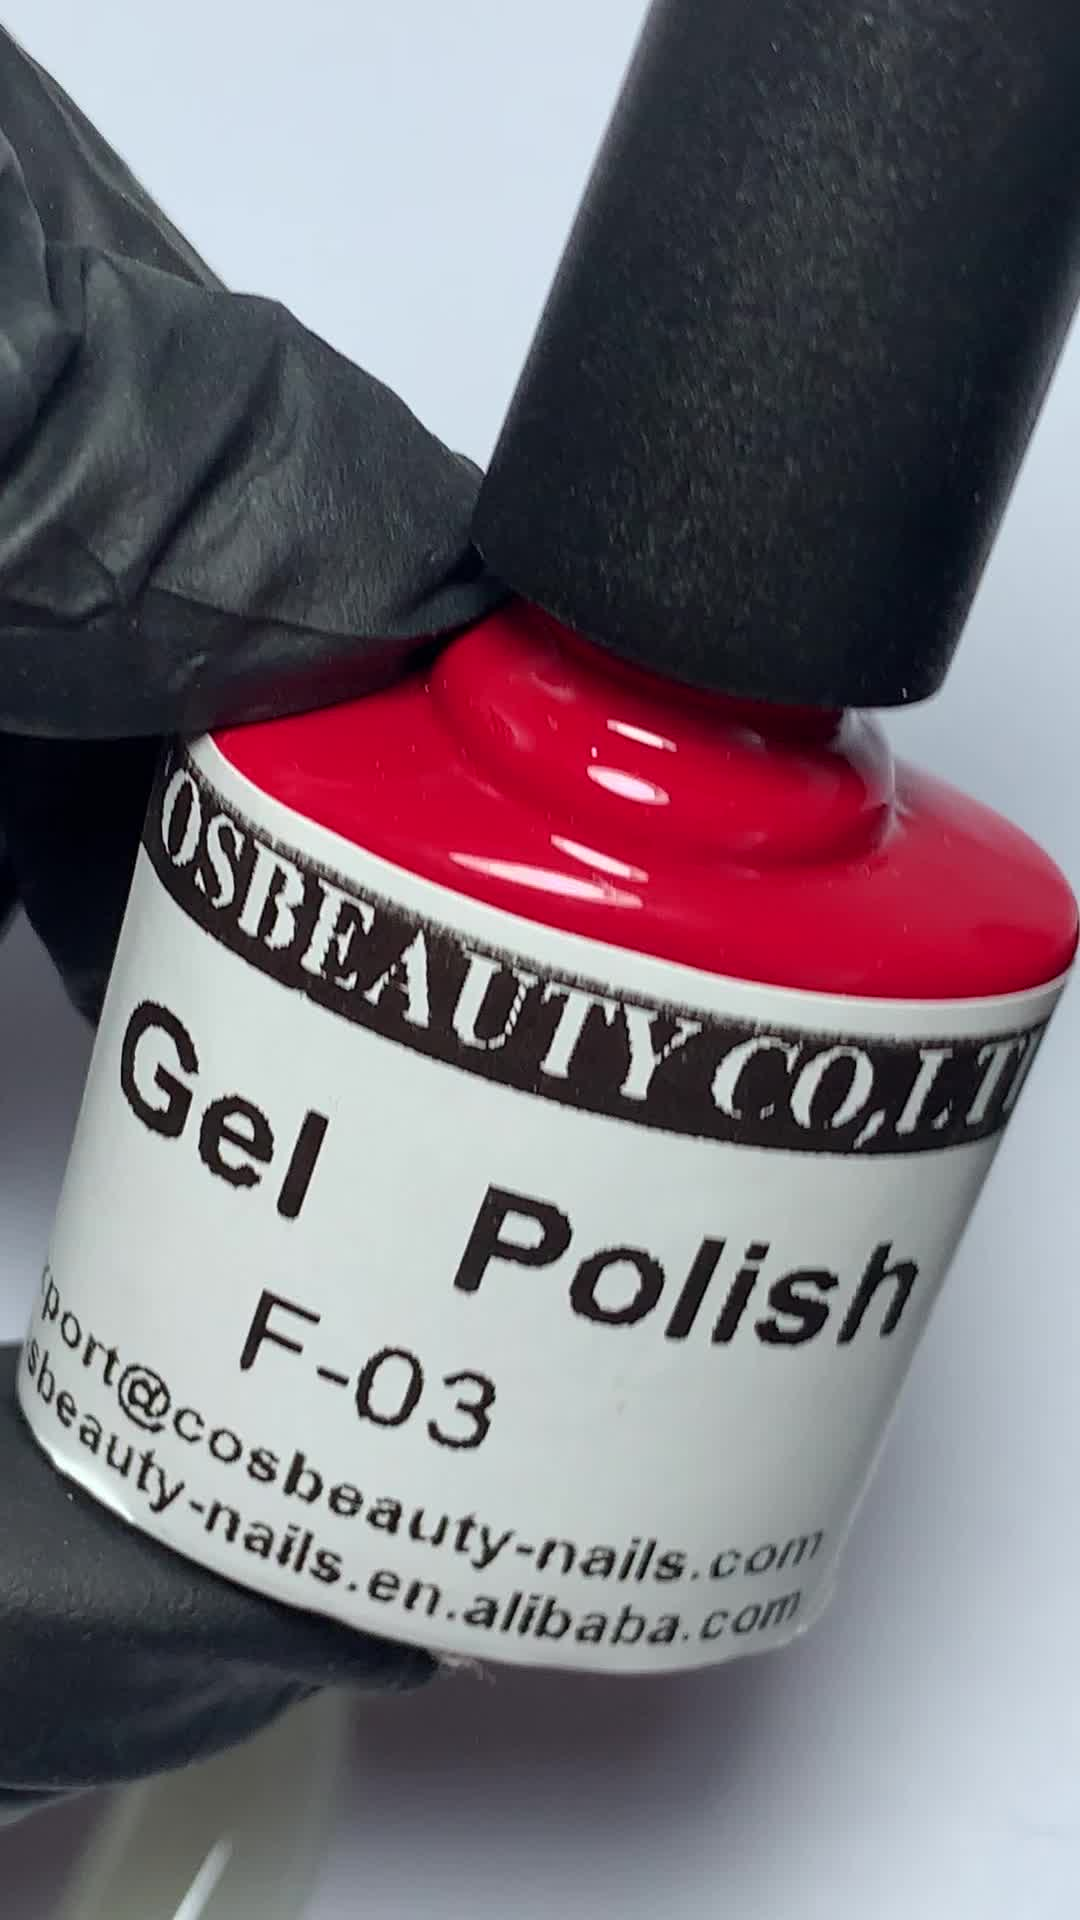 COS Beauty Wholesale OEM/ODM Private Label Long Lasting Gel Polish Soak Off In UV Set With Free Sample